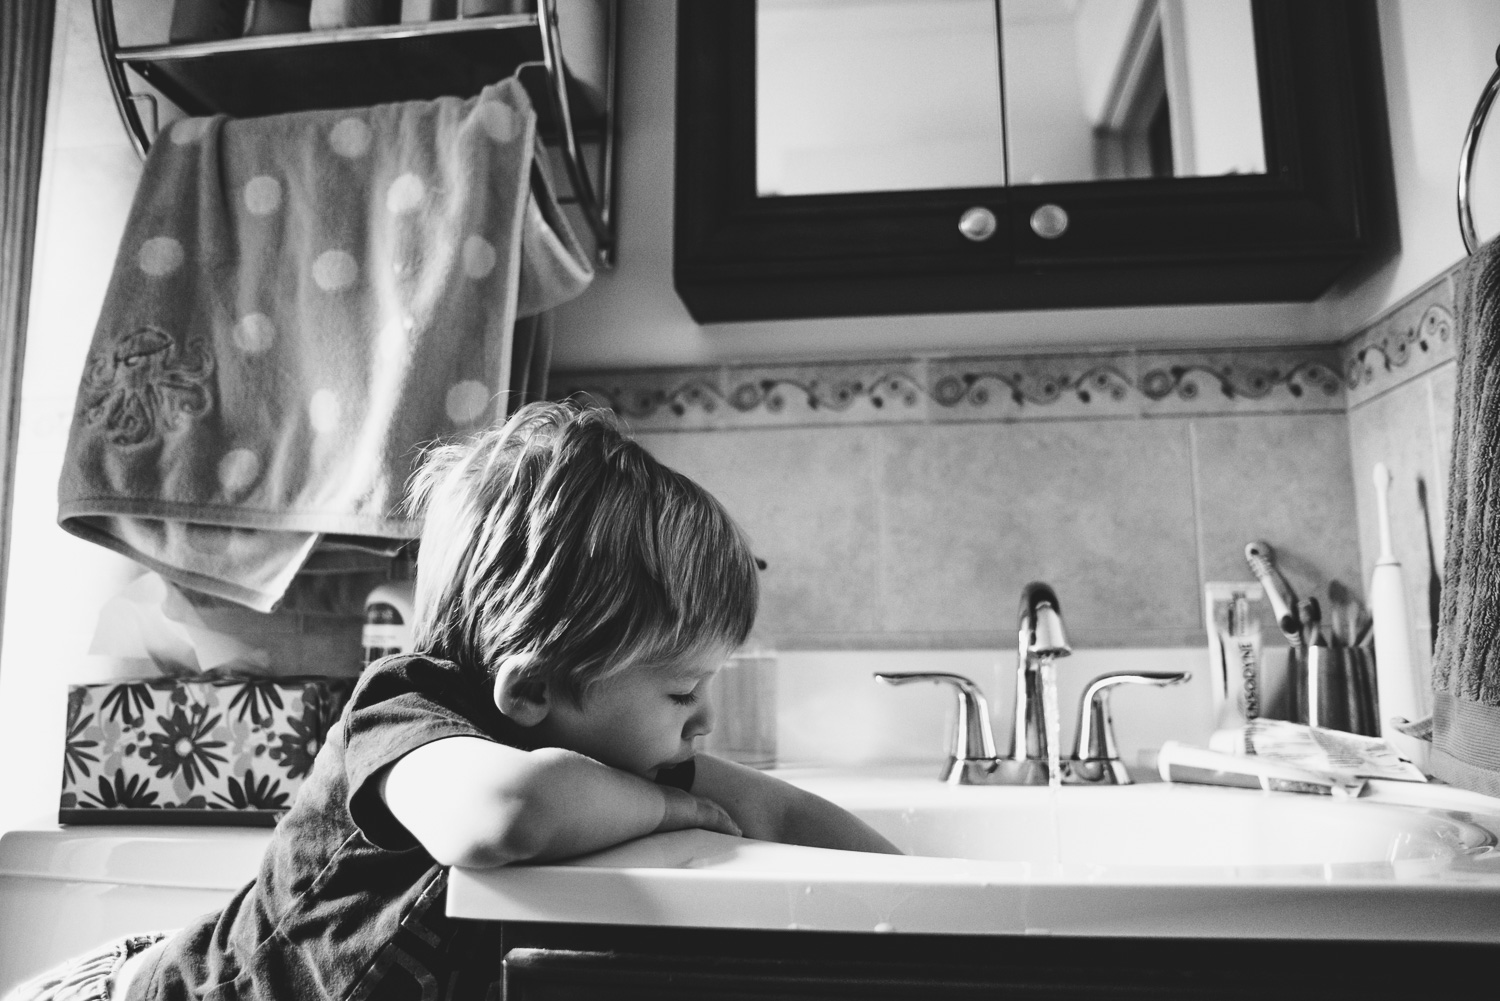 Toddler boy playing in the bathroom sink.